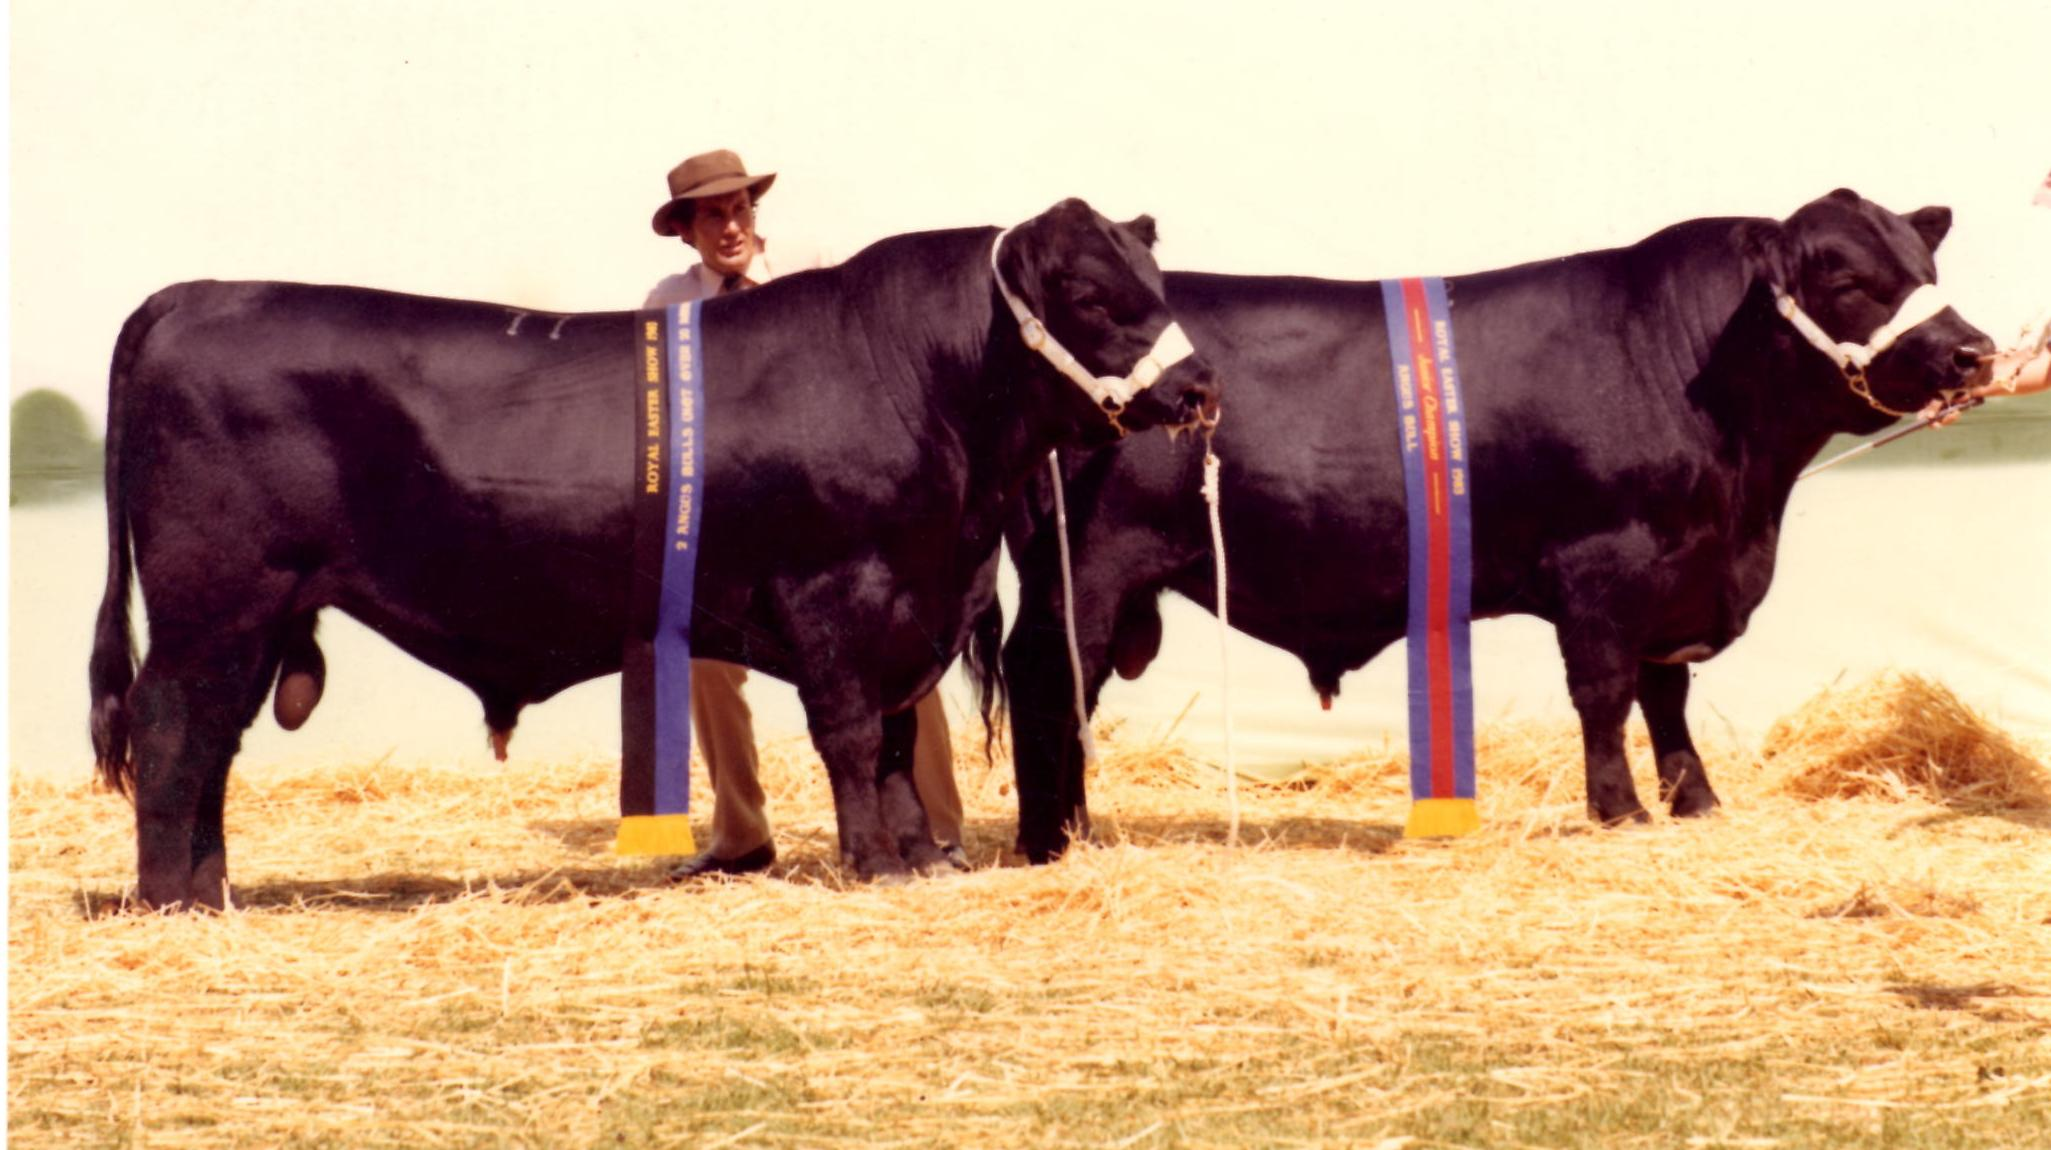 Junior Champion Bull & Pair of Bulls, Sydney Royal Easter Show 1983 - Glenoch Alistair & Glenoch Astronaut